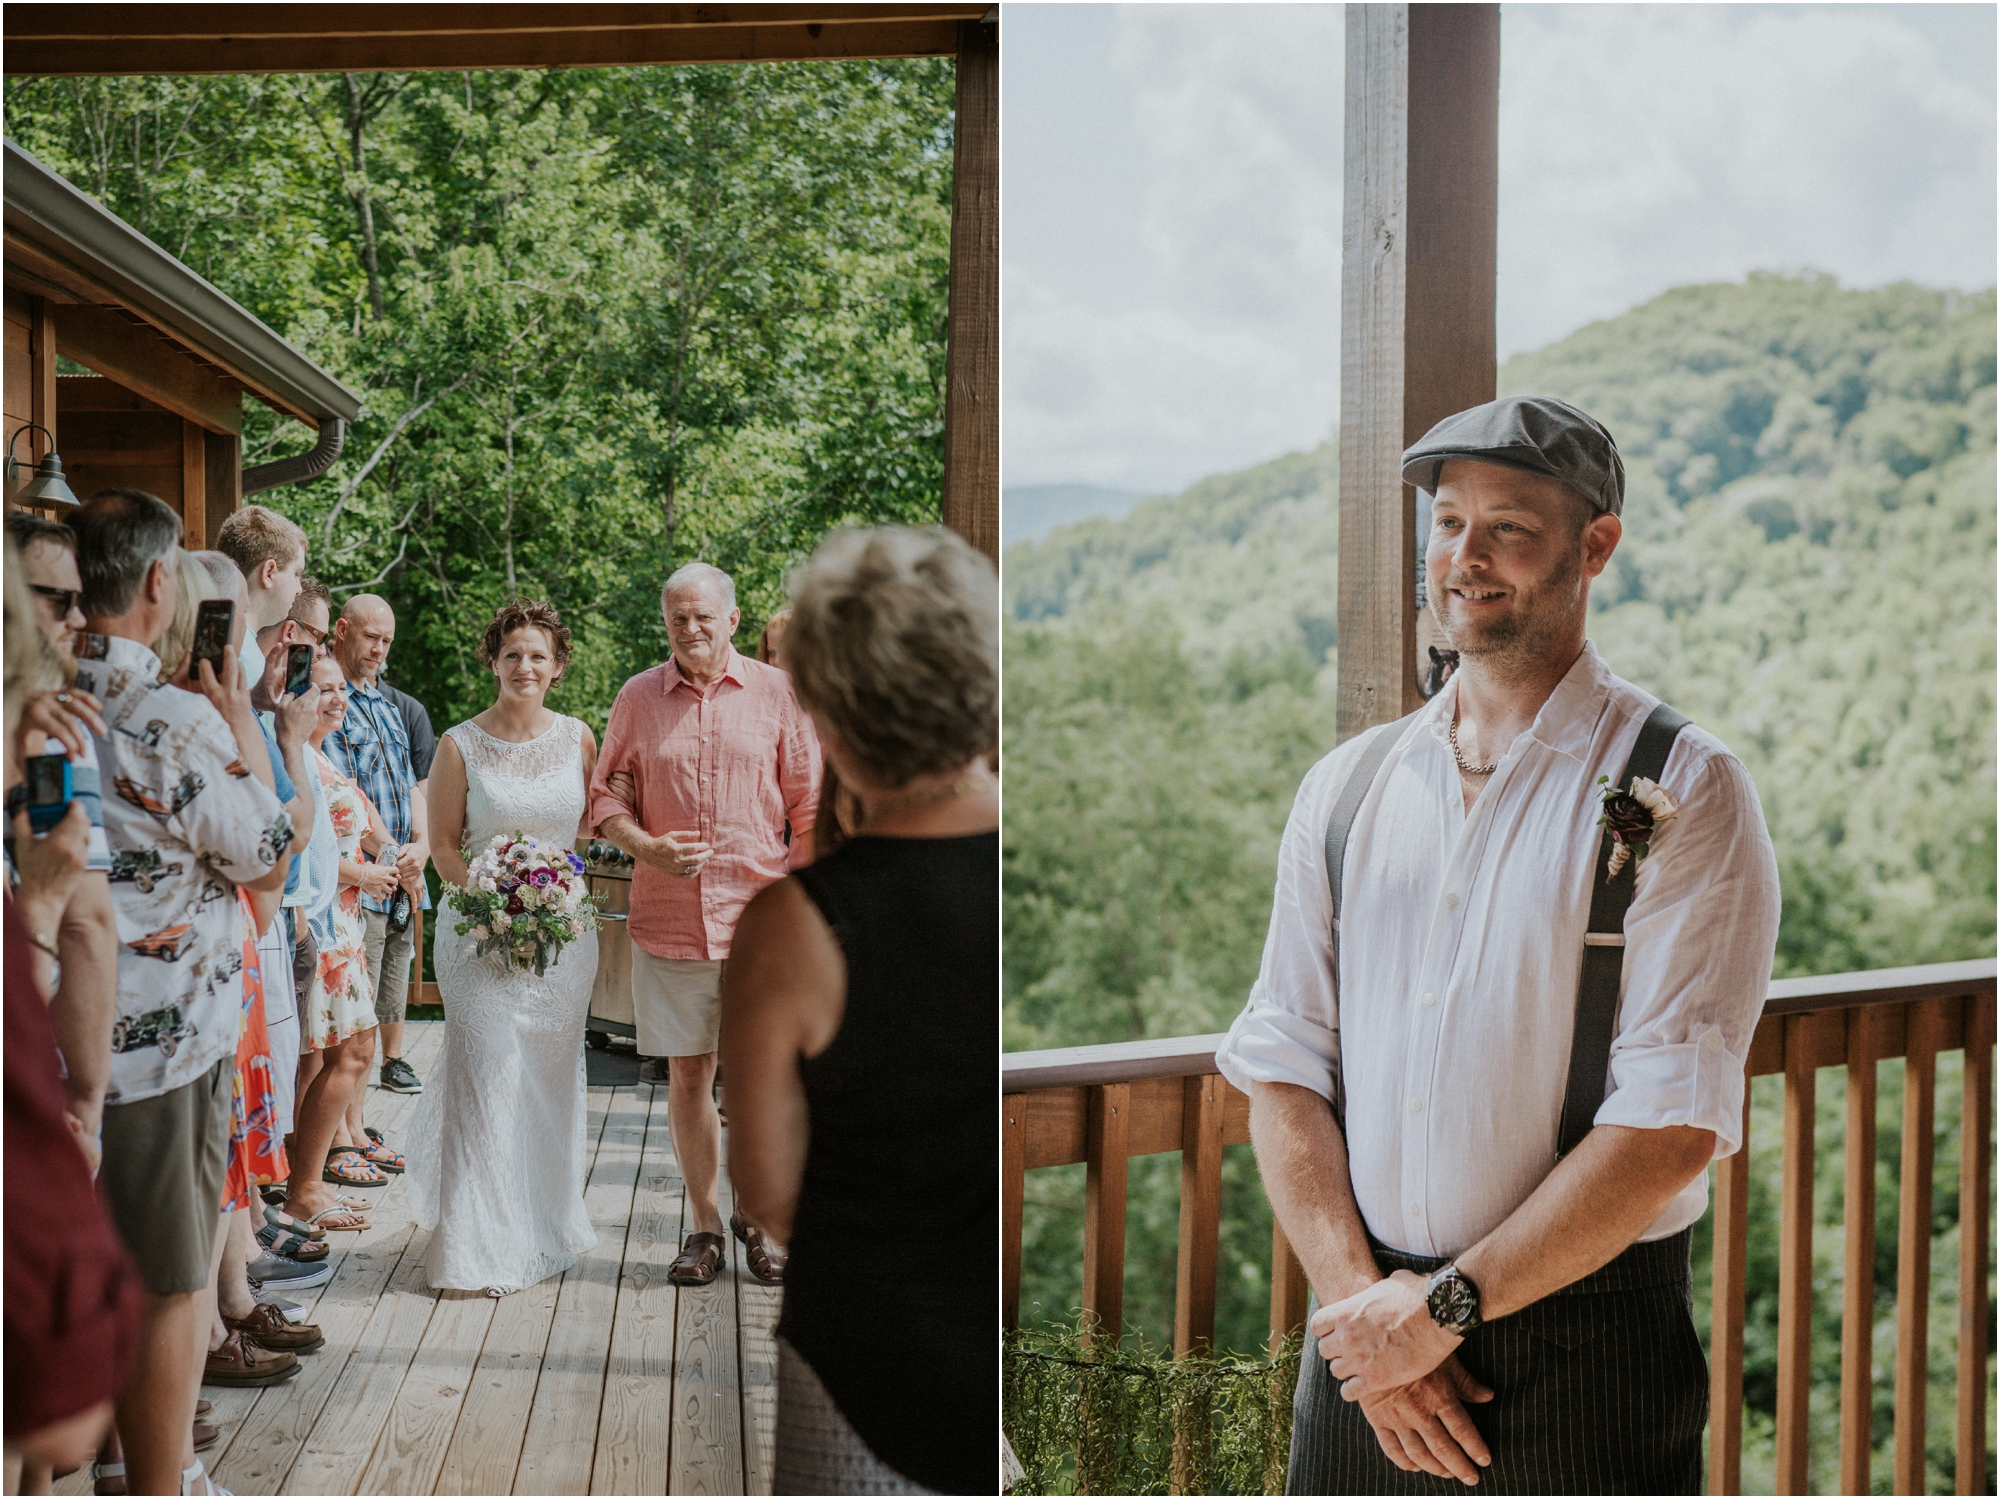 cabin-parkside-resort-the-magnolia-venue-tennessee-mountain-views-intimate-wedding_0119.jpg